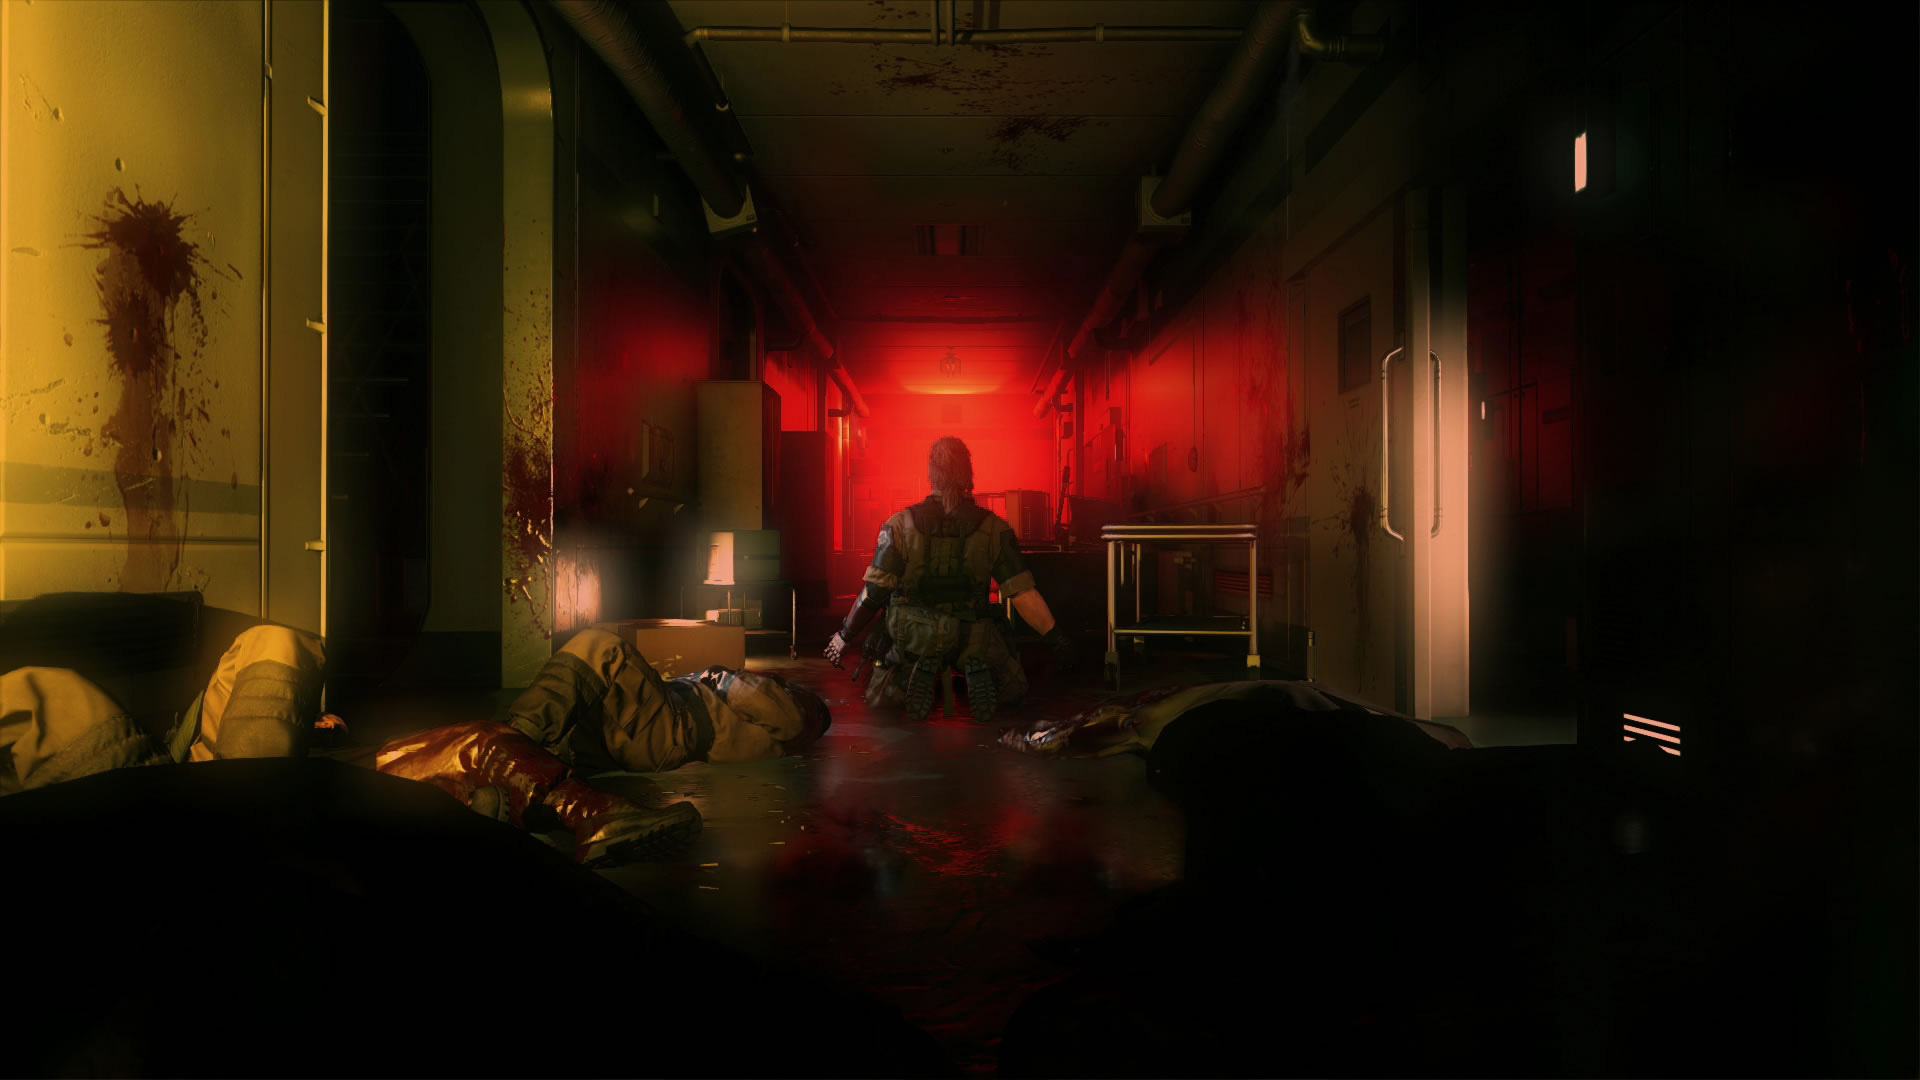 Metal-Gear-Solid-V-The-Phantom-Pain-E3-2015-Screen-Big-Boss-Hallway